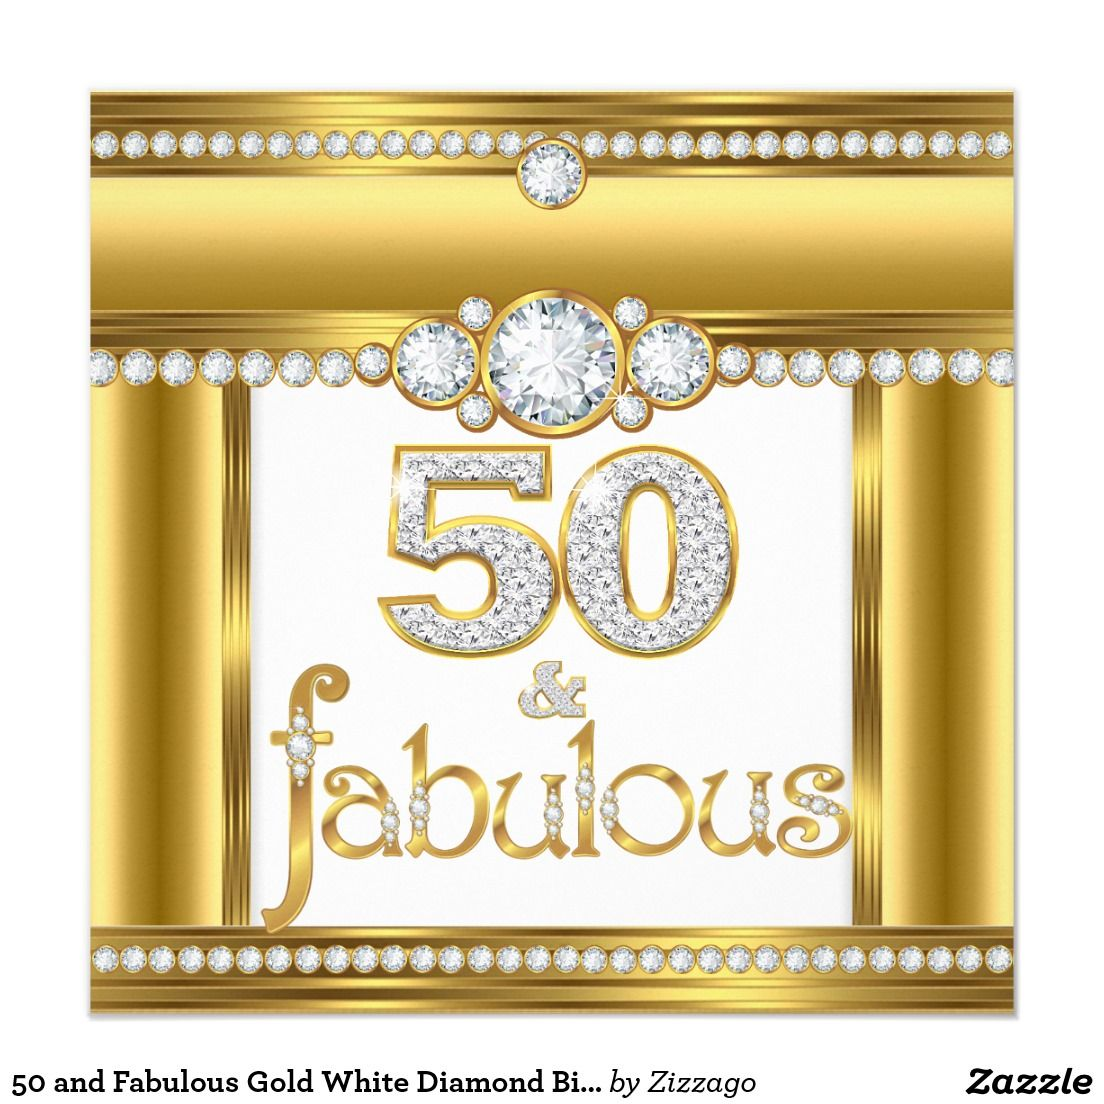 50 and Fabulous Gold White Diamond Birthday Party Card Fabulous